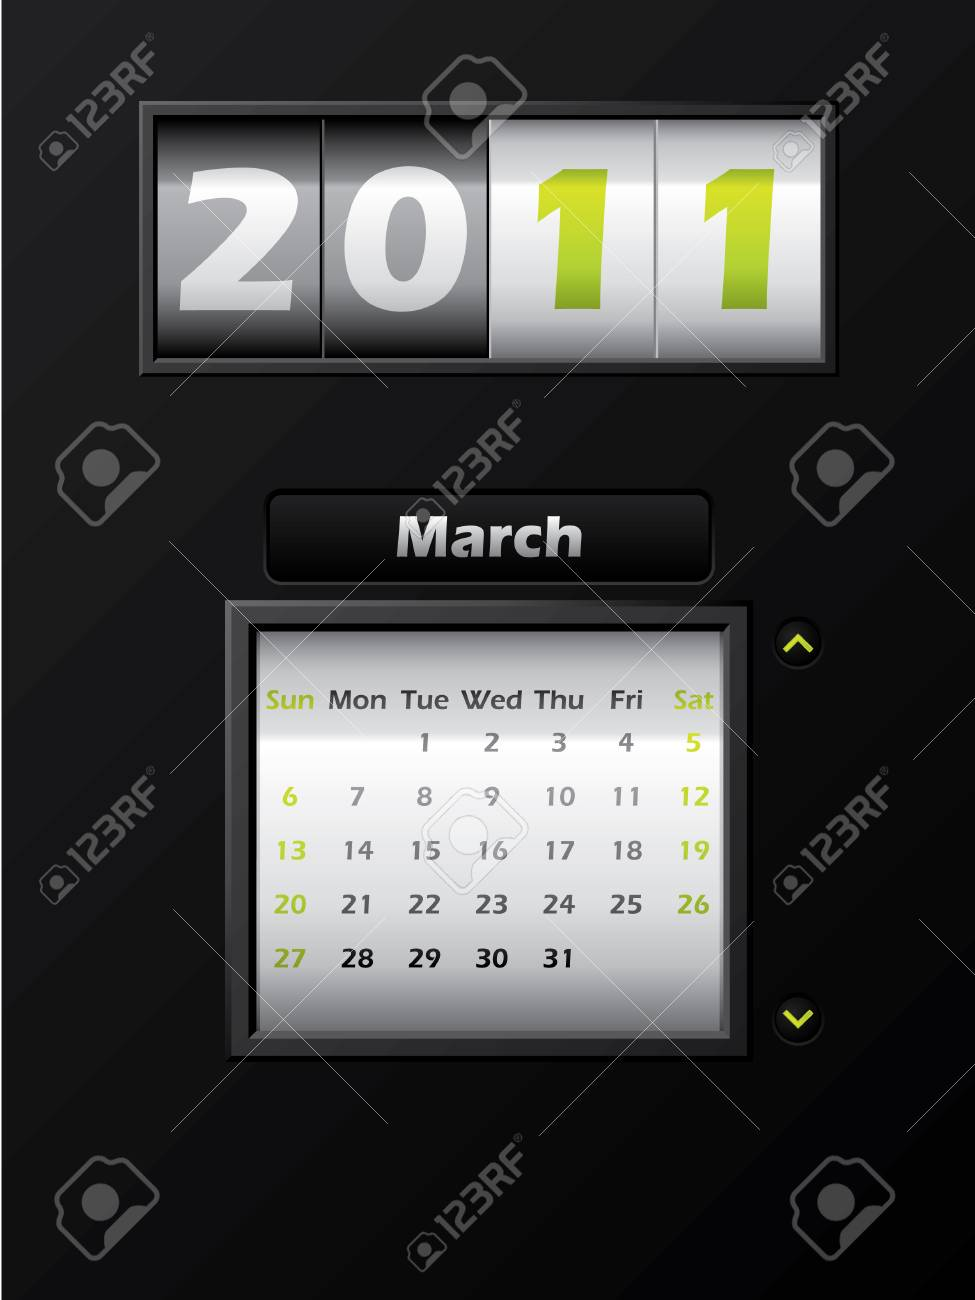 2011 march month counter calendar Stock Vector - 8127745